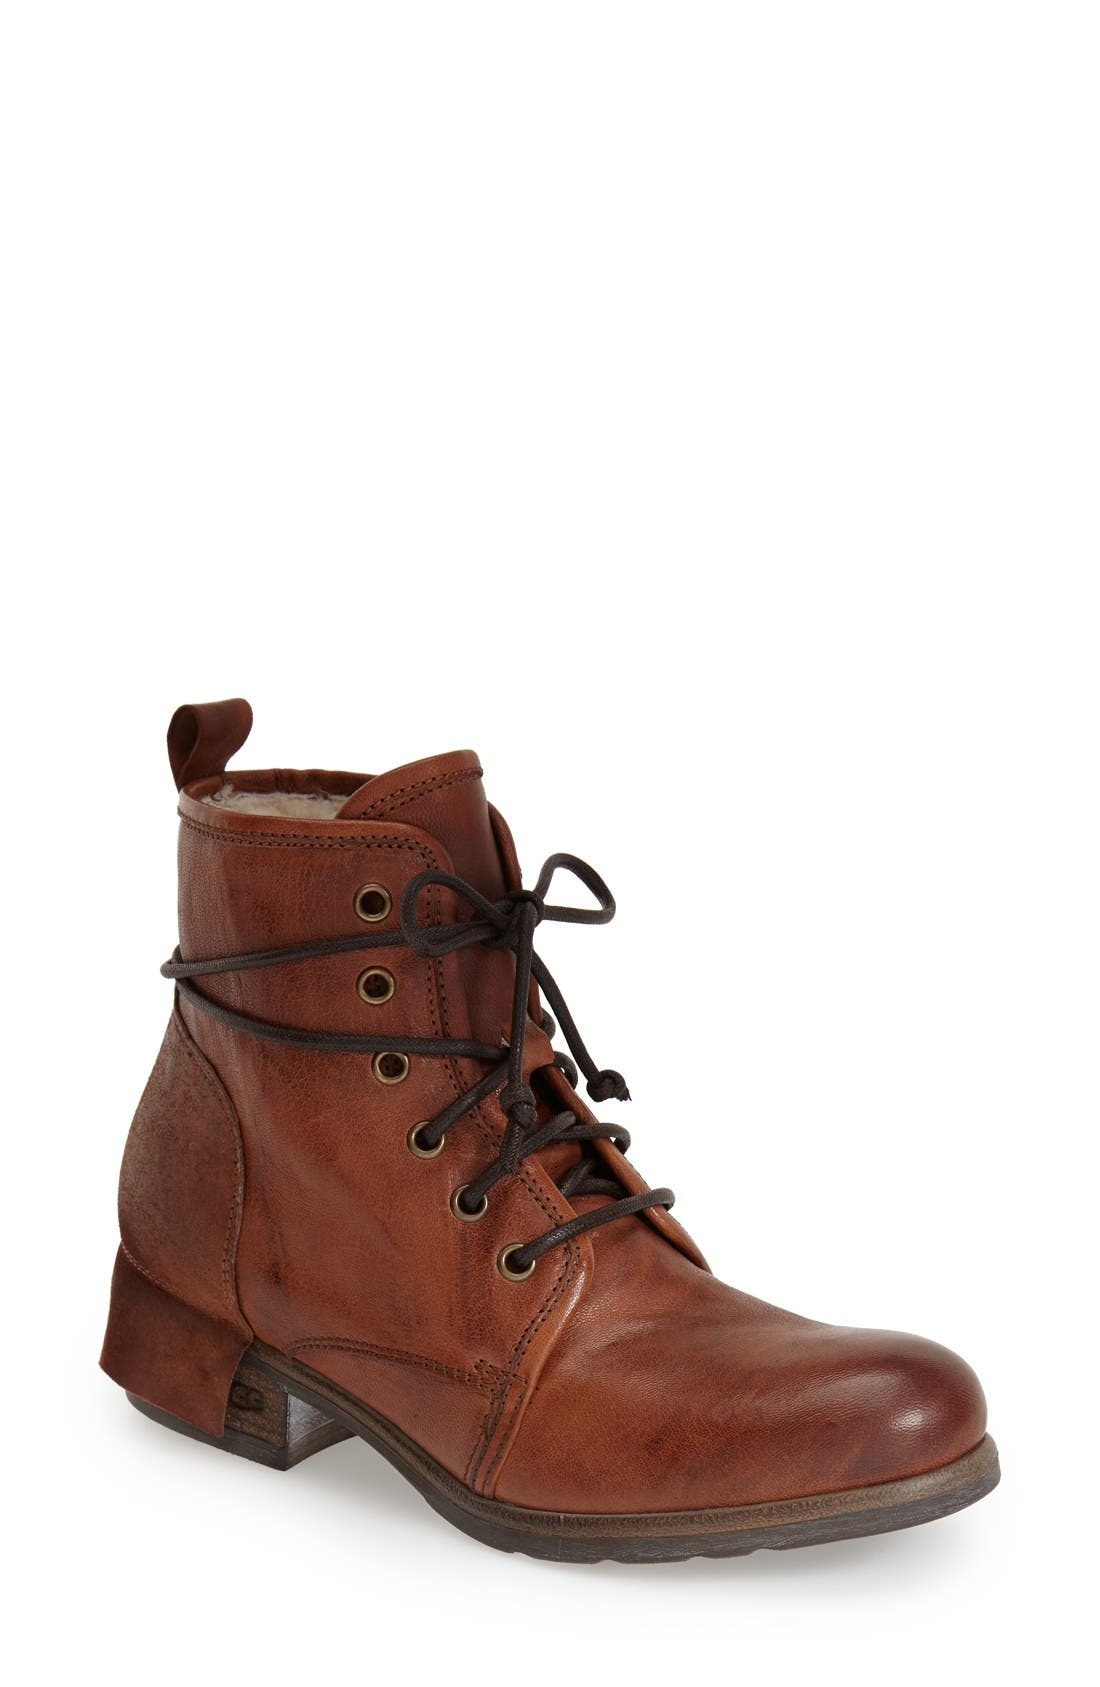 Main Image - UGG® Collection 'Tesa' Lace-Up Ankle Boot (Women)